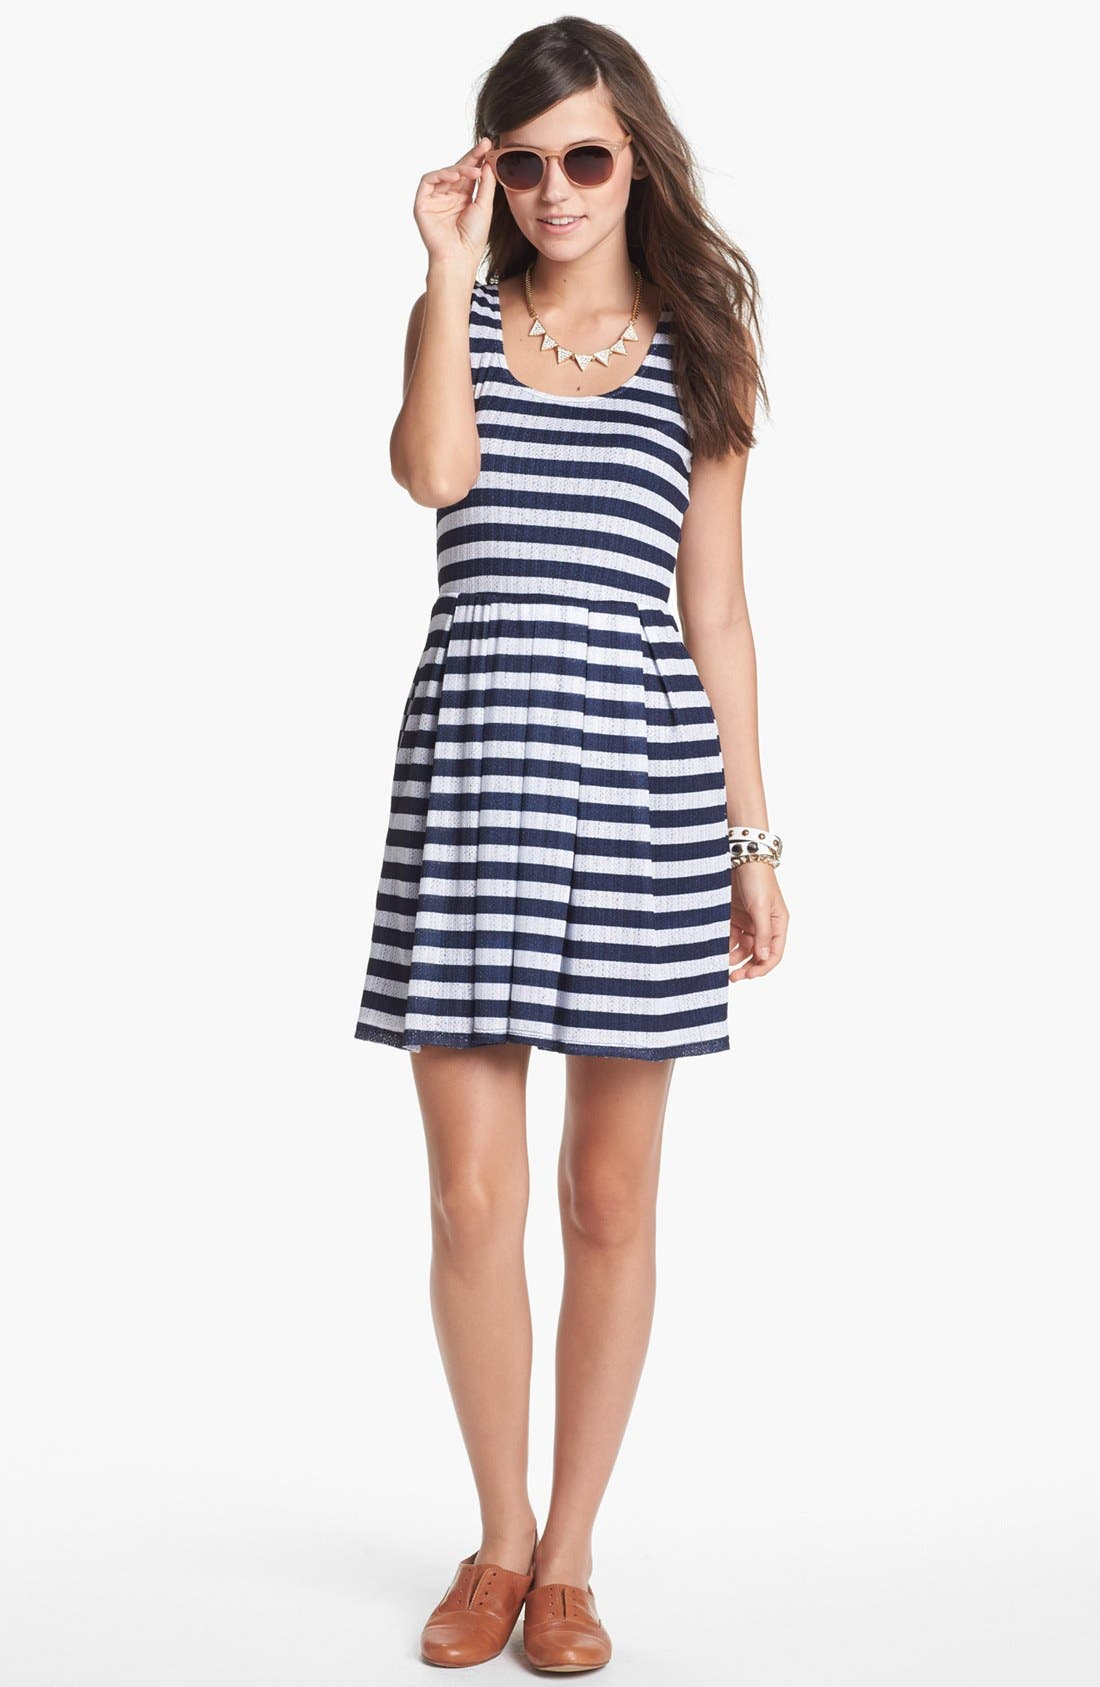 Alternate Image 1 Selected - Mimi Chica Pointelle Fit & Flare Dress (Juniors)